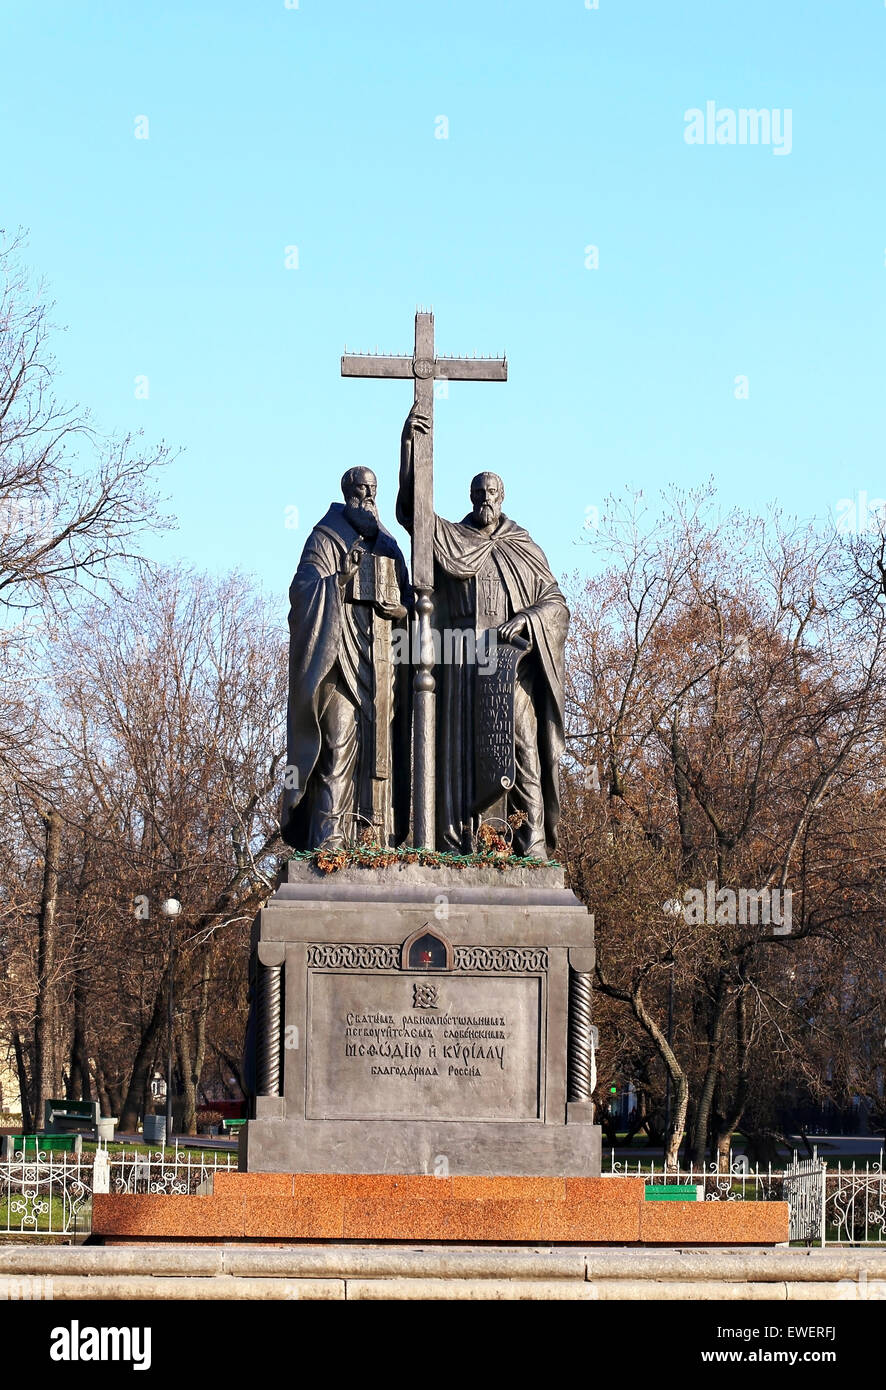 Cyril and Methodius are founders of slavic literature. The monument was erected in the center of Moscow Stock Photo